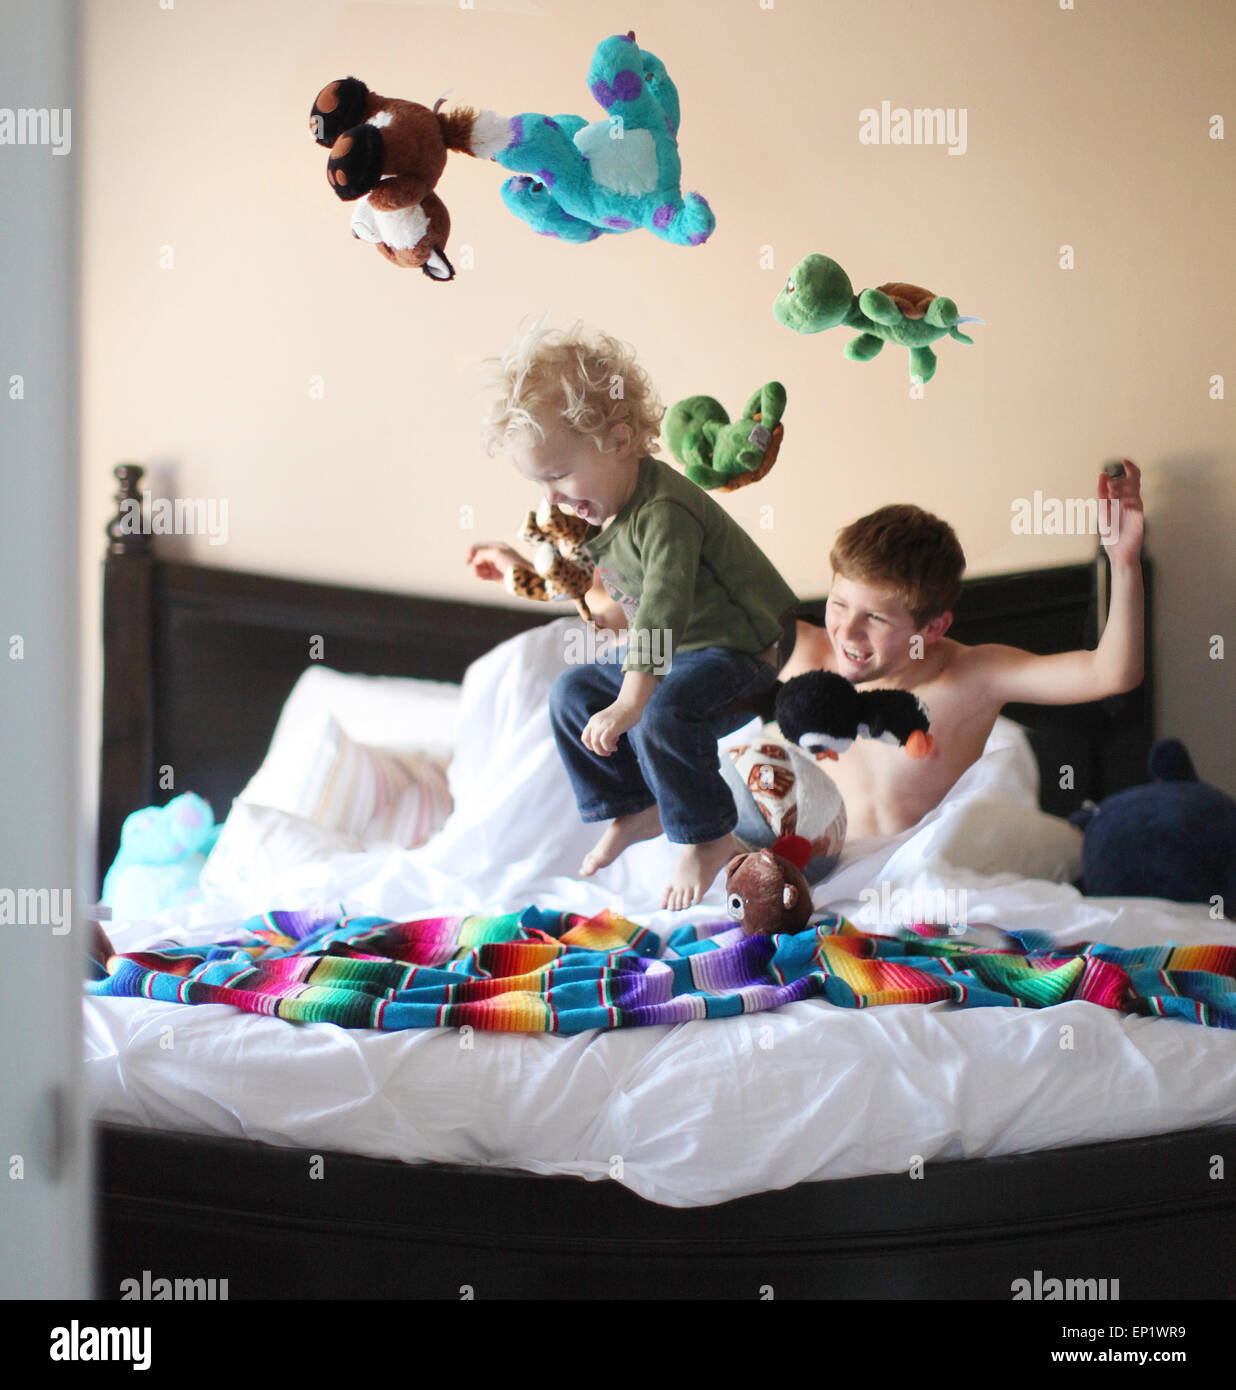 Boy jumping on brothers bed and throwing soft toys in the air Stock Photo